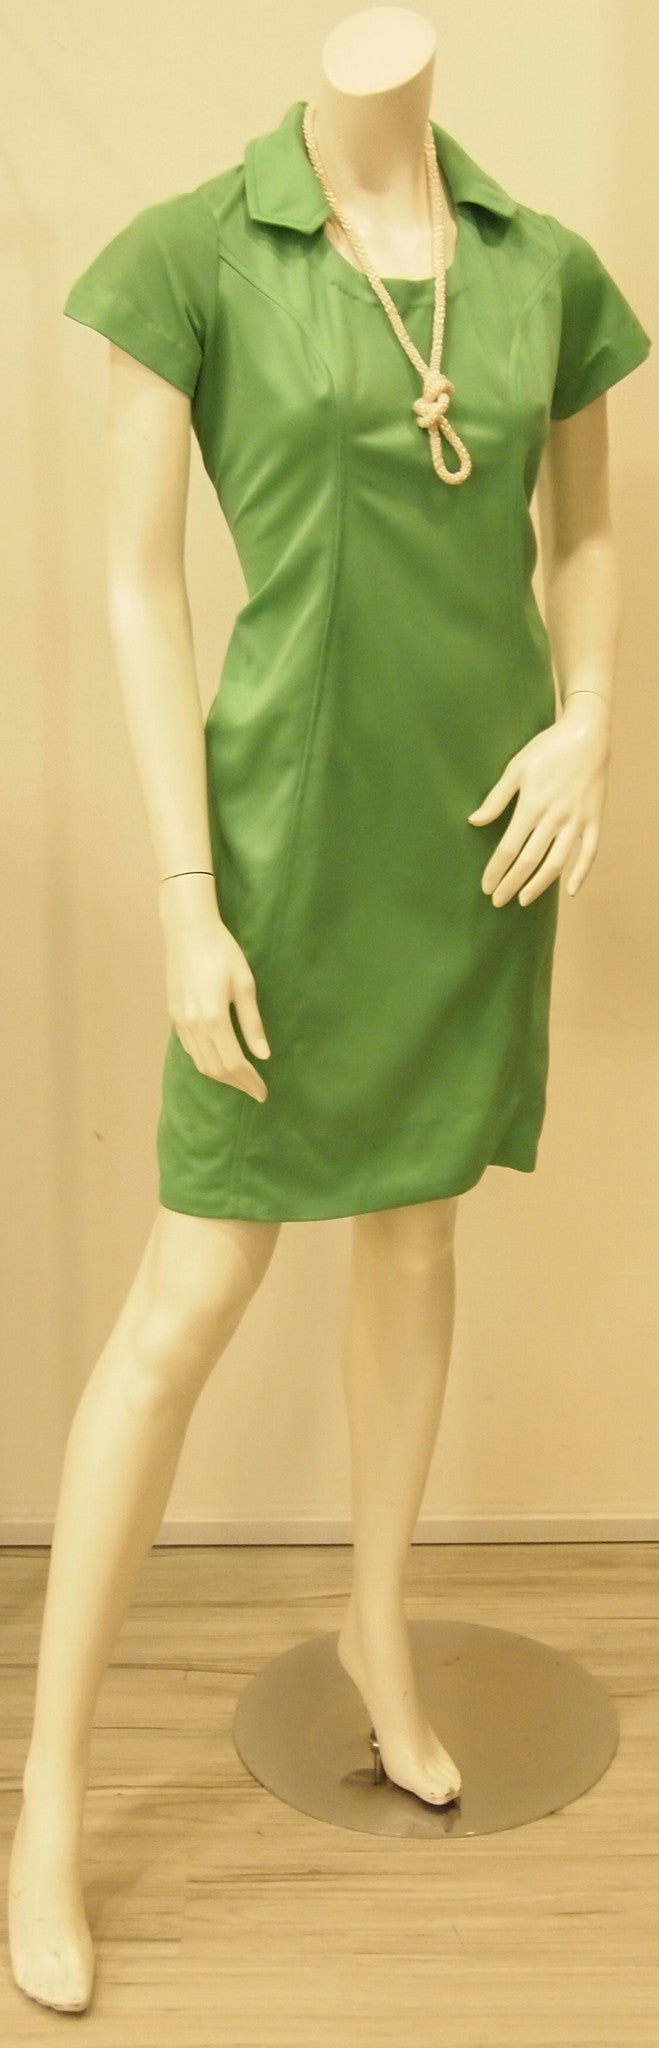 Green Spaces60s Mod Vintage Dress